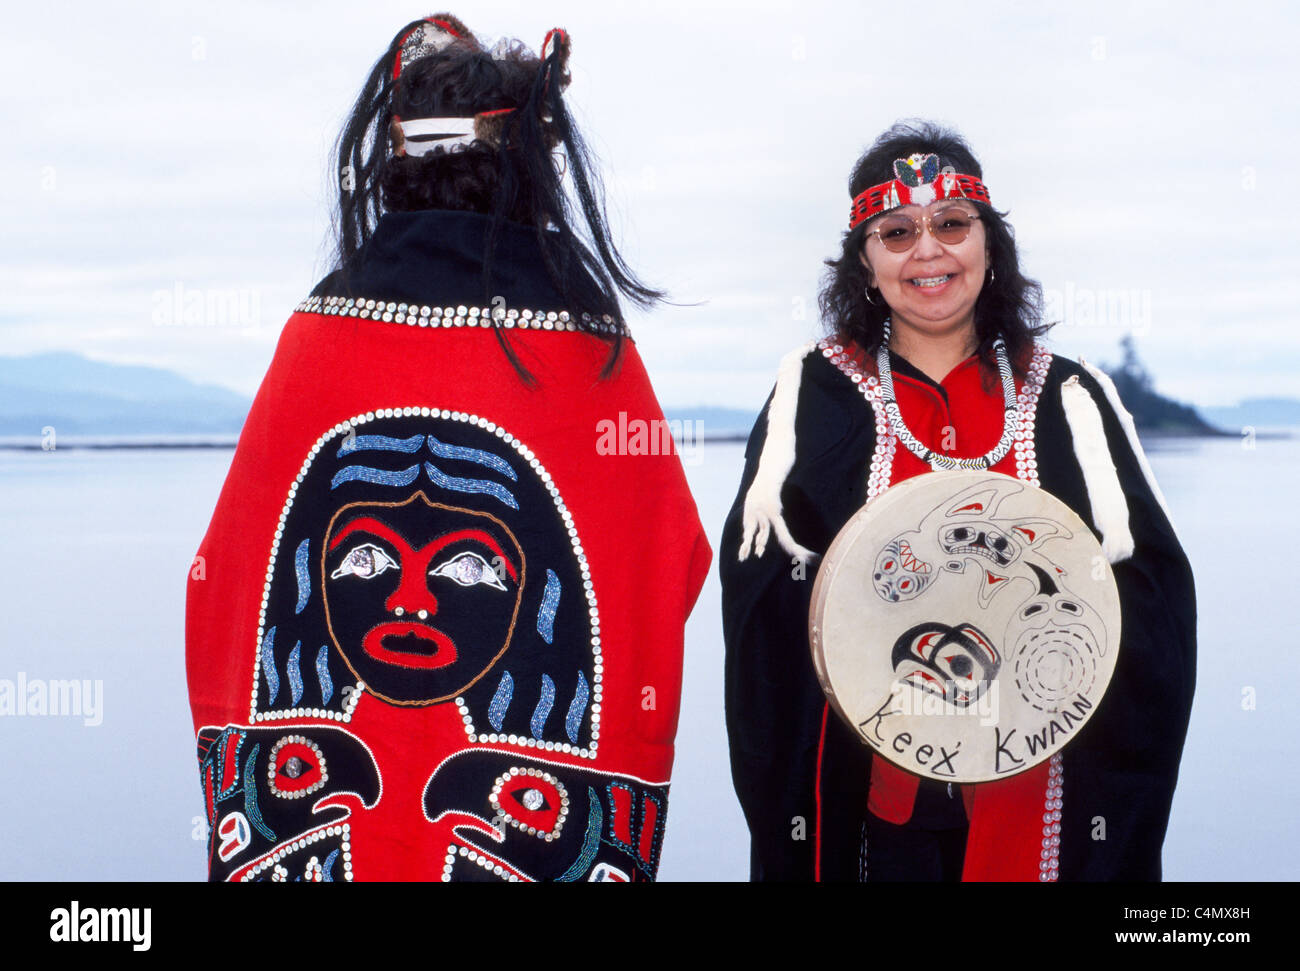 Two Tlingit Native American women display traditional capes designed with buttons and a drum of the Keex tribe (kwaan) - Stock Image